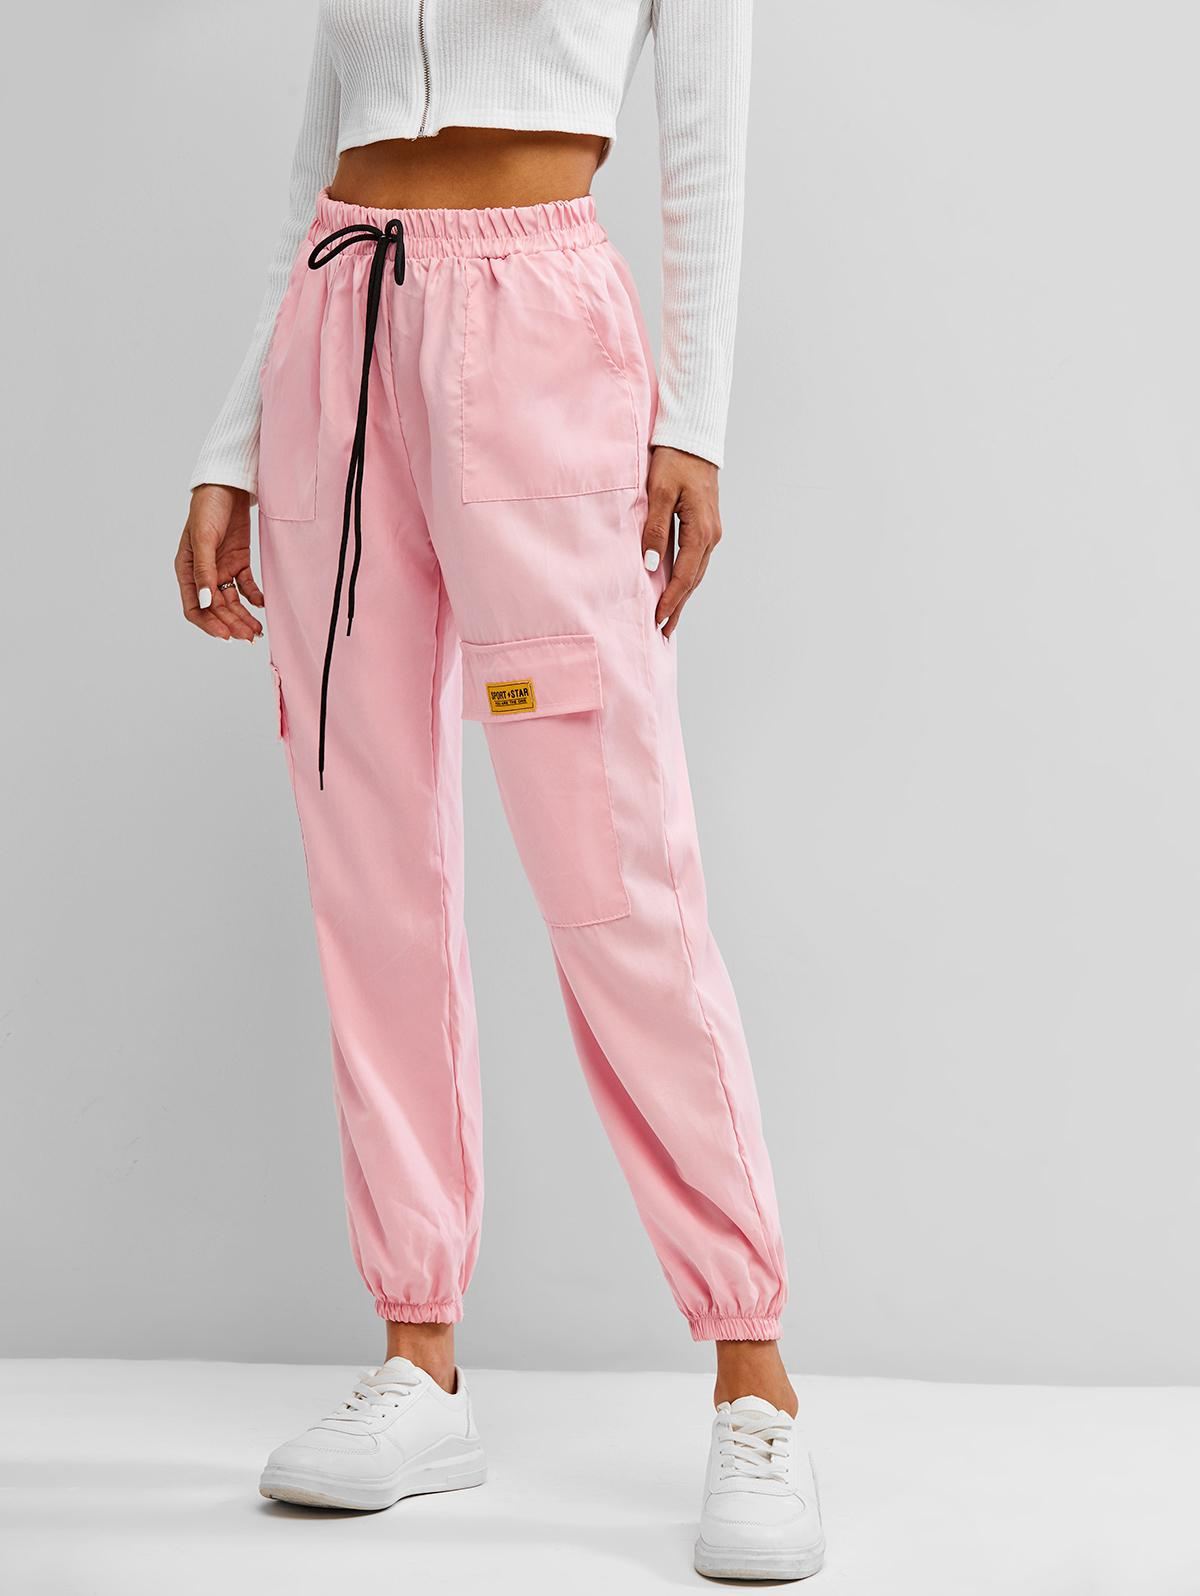 Letter Applique Bowknot Detail Cargo Pants